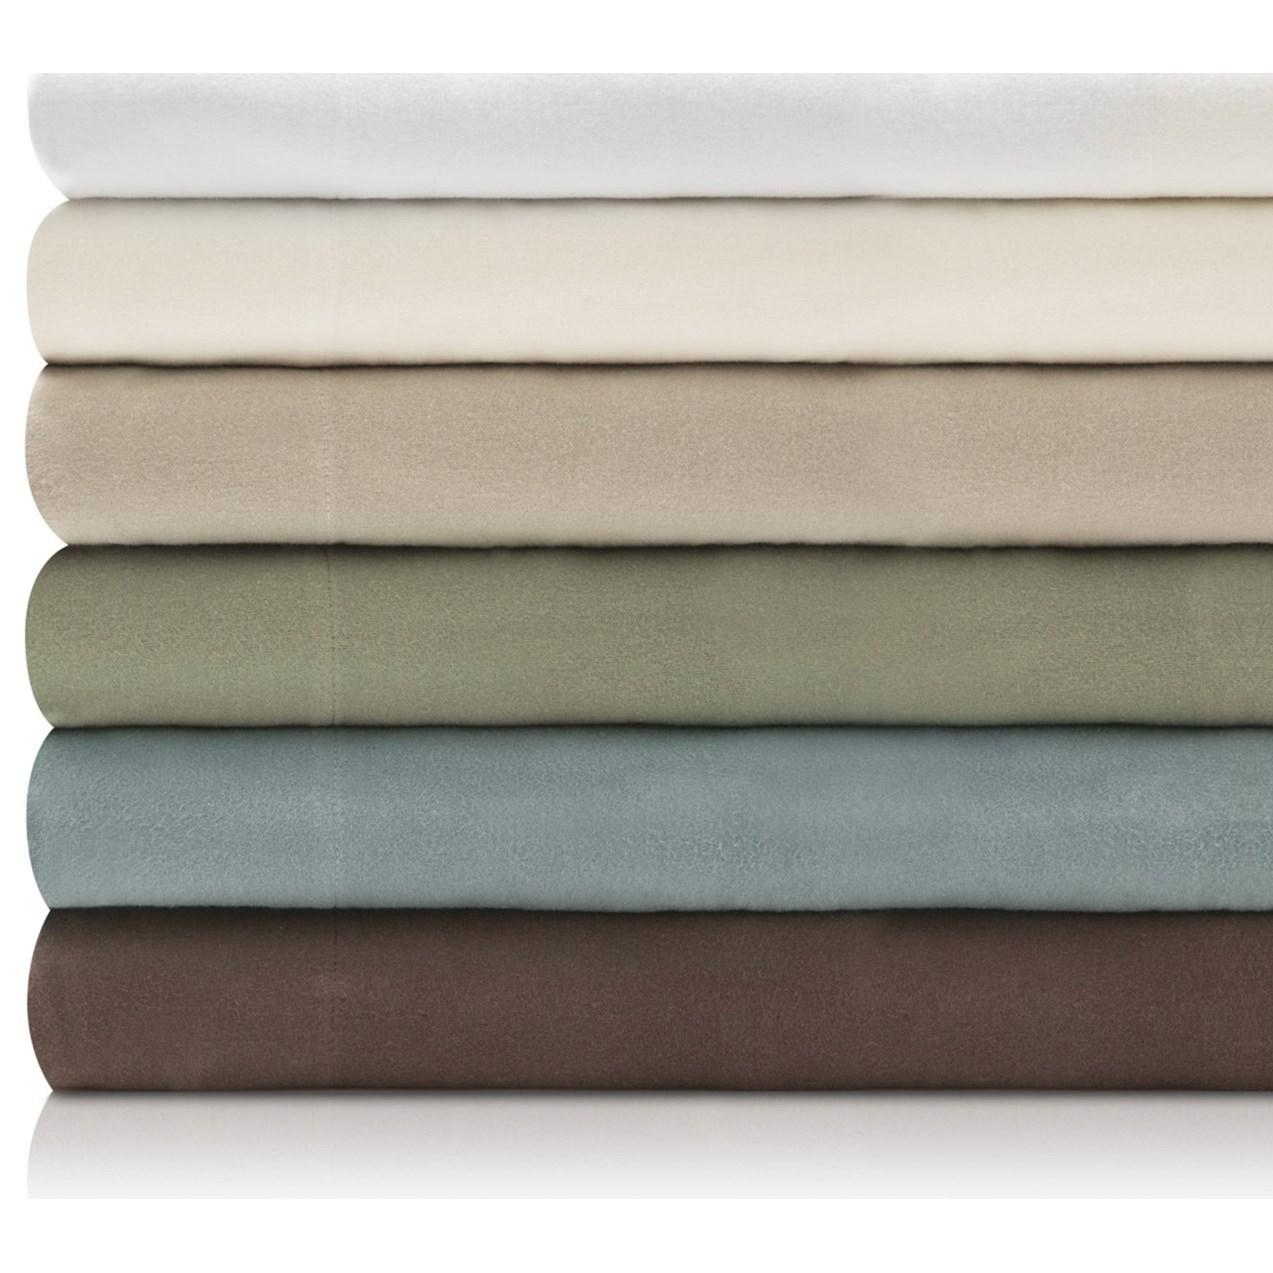 Malouf Portuguese Flannel King Woven™ Portuguese Flannel Sheet Set - Item Number: WO19KKWHFS